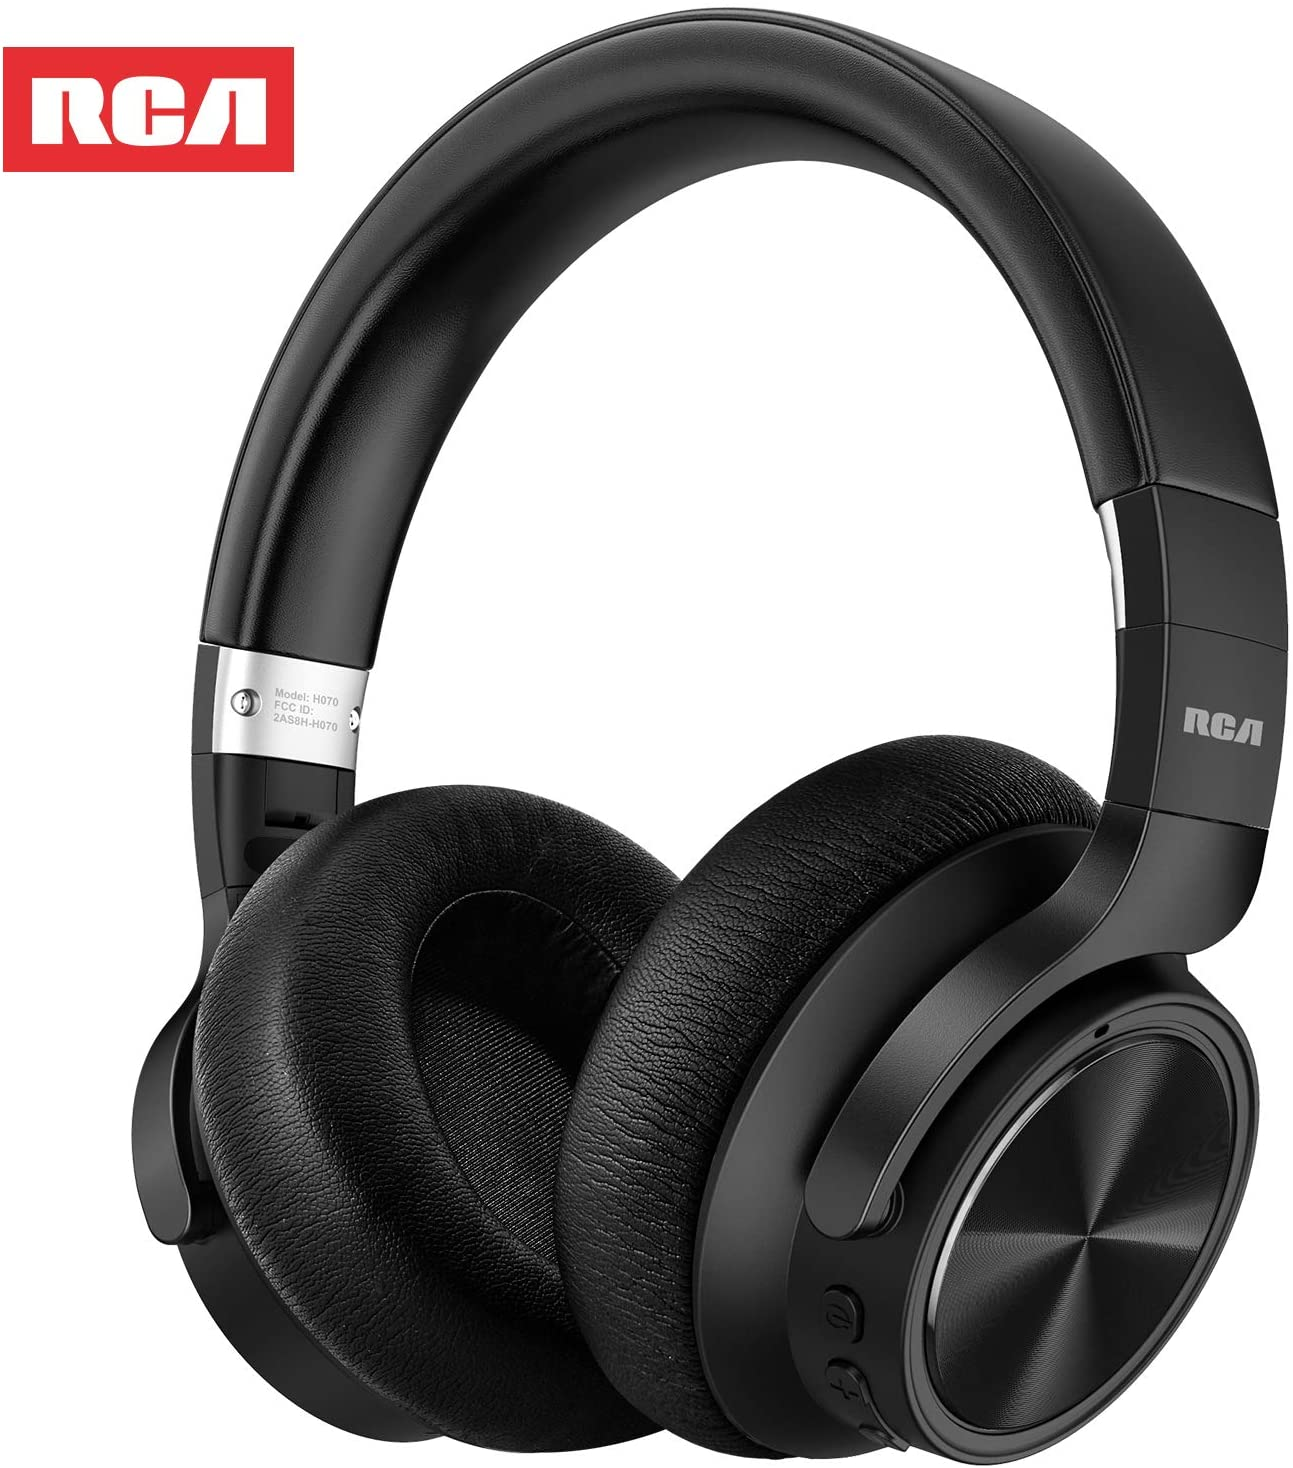 RCA active noise cancelling headphone